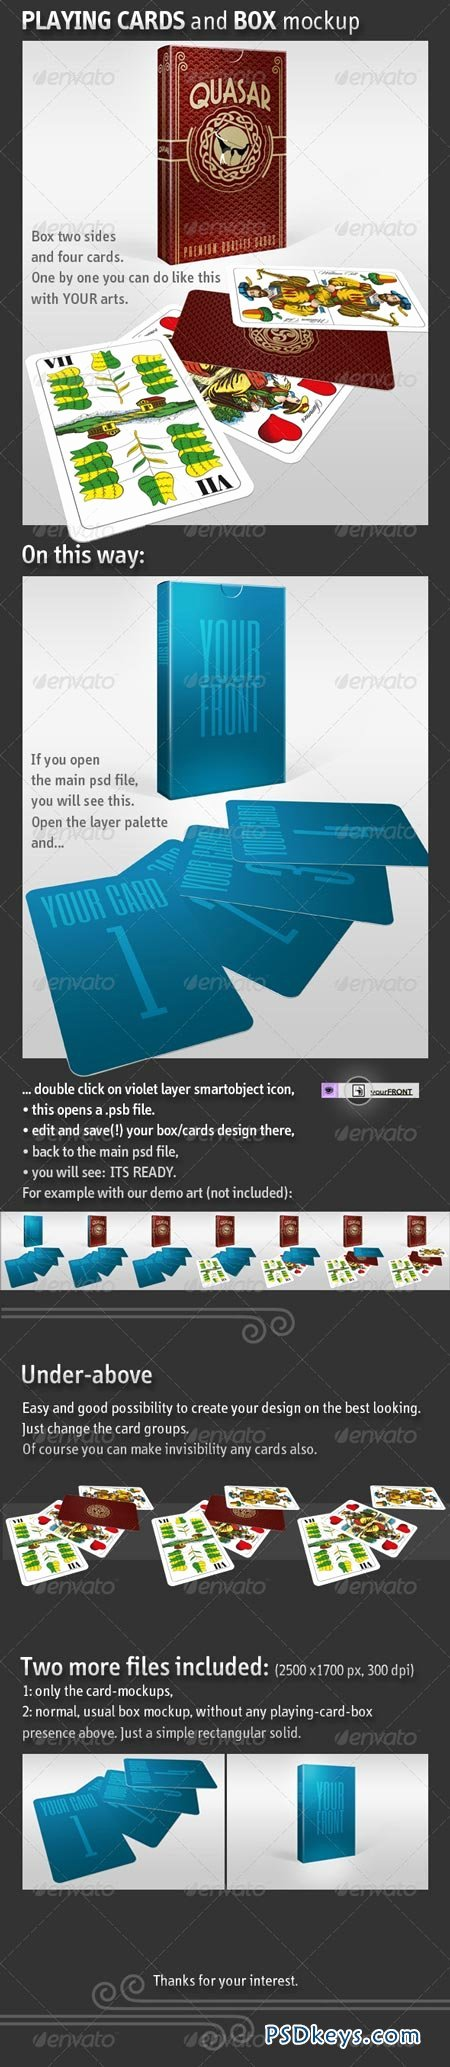 Playing Card Template Photoshop Lovely Playing Card Business Card and Box Mockup Free Download Shop Vector Stock Image